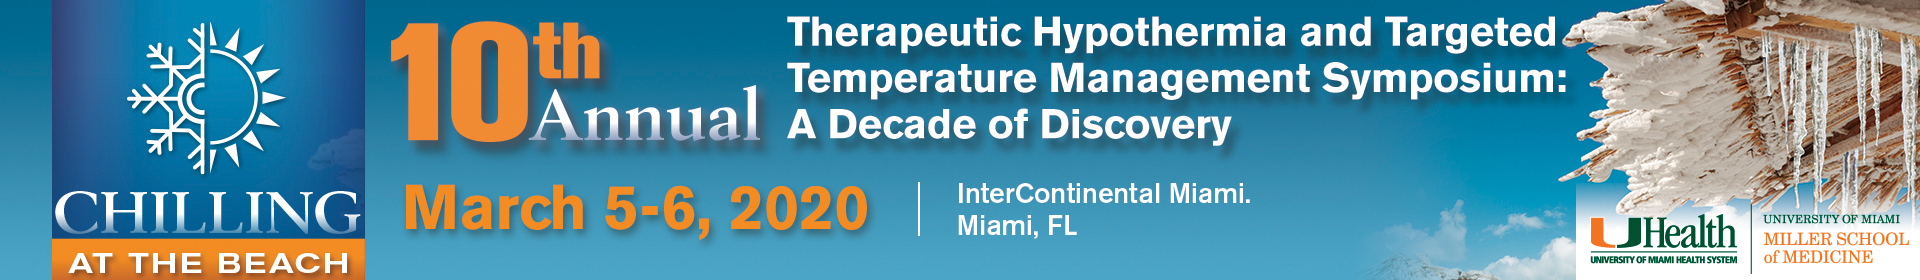 10th Annual Therapeutic Hypothermia and Targeted Management Symposium: A Decade of Discovery